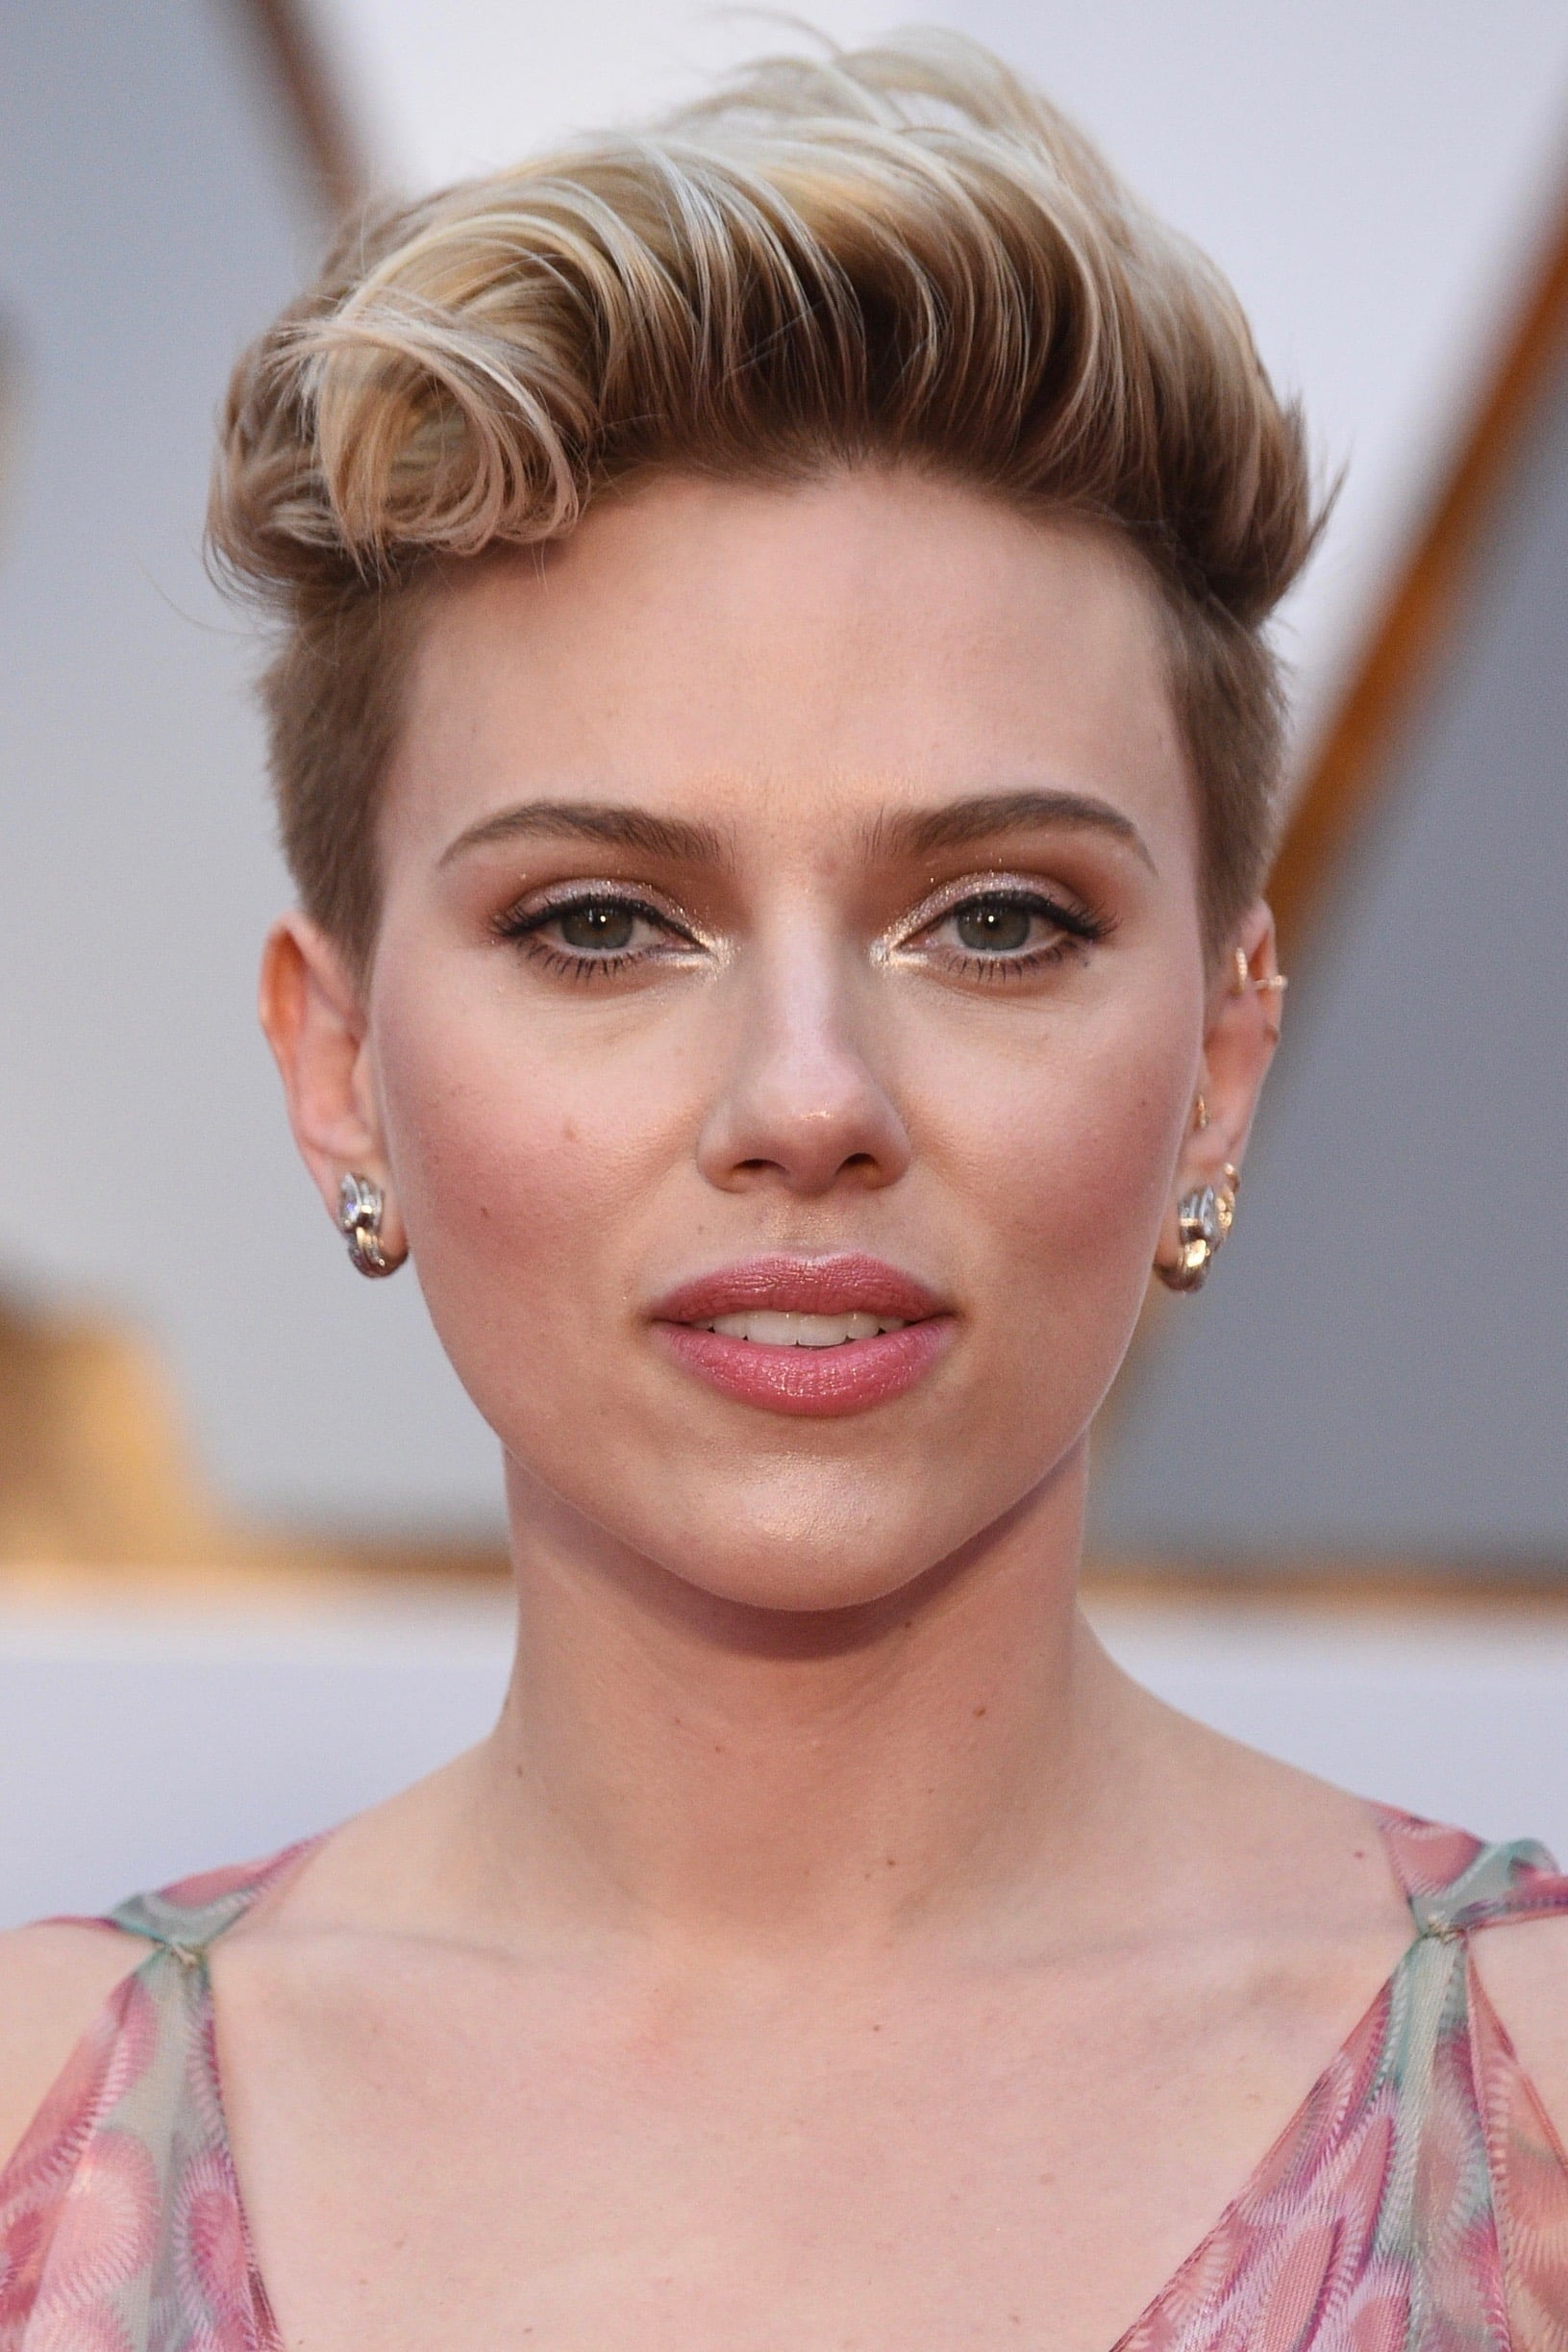 Scarlett Johansson - Profile Images — The Movie Database ... Scarlett Johansson